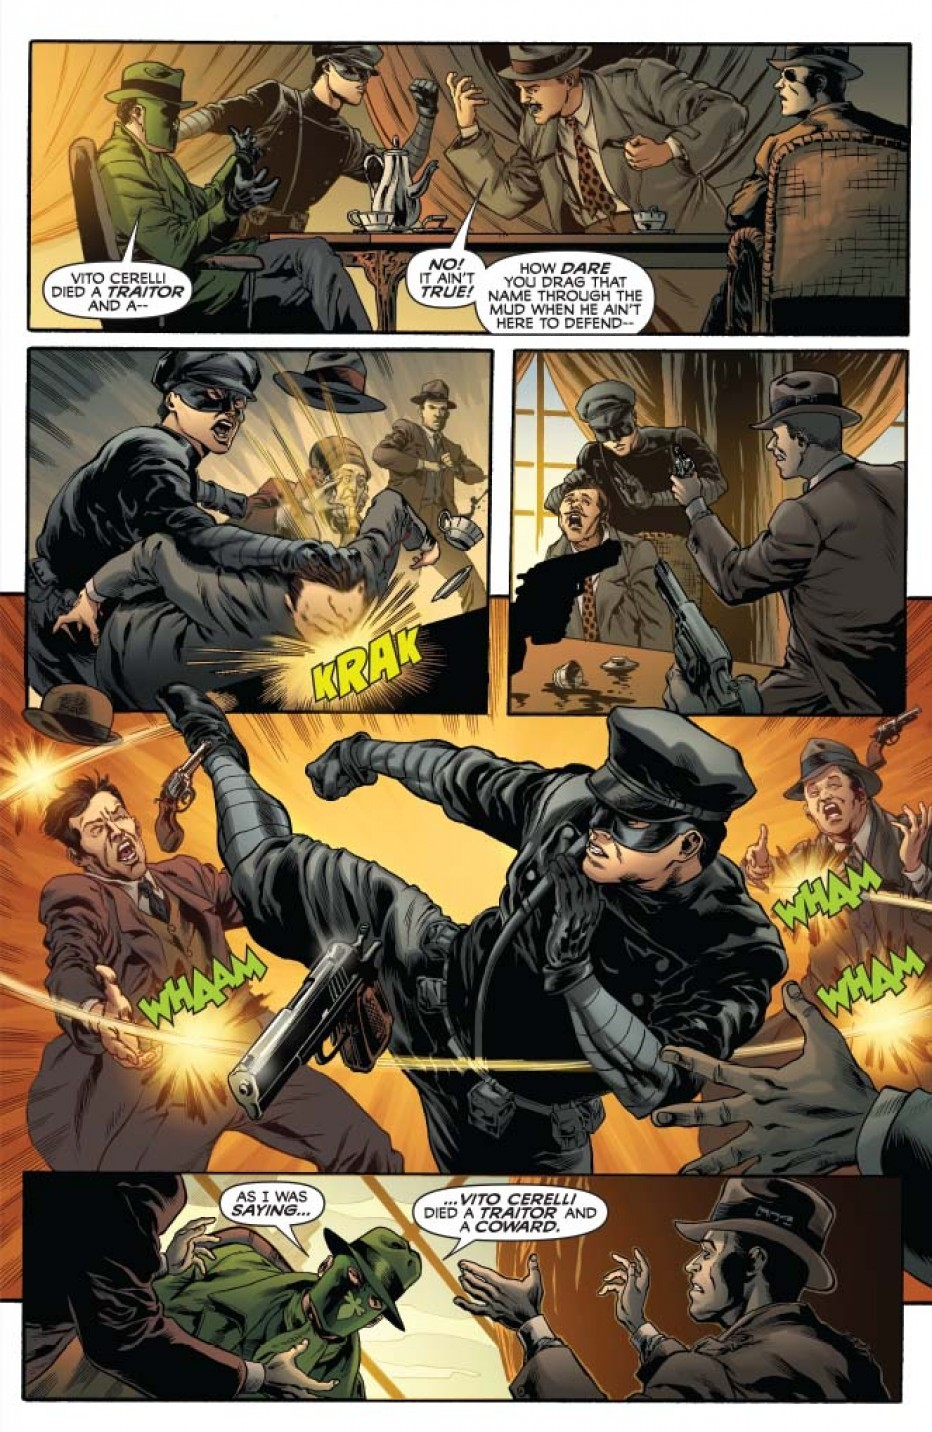 From Mark Waid's 'The Green Hornet' #11